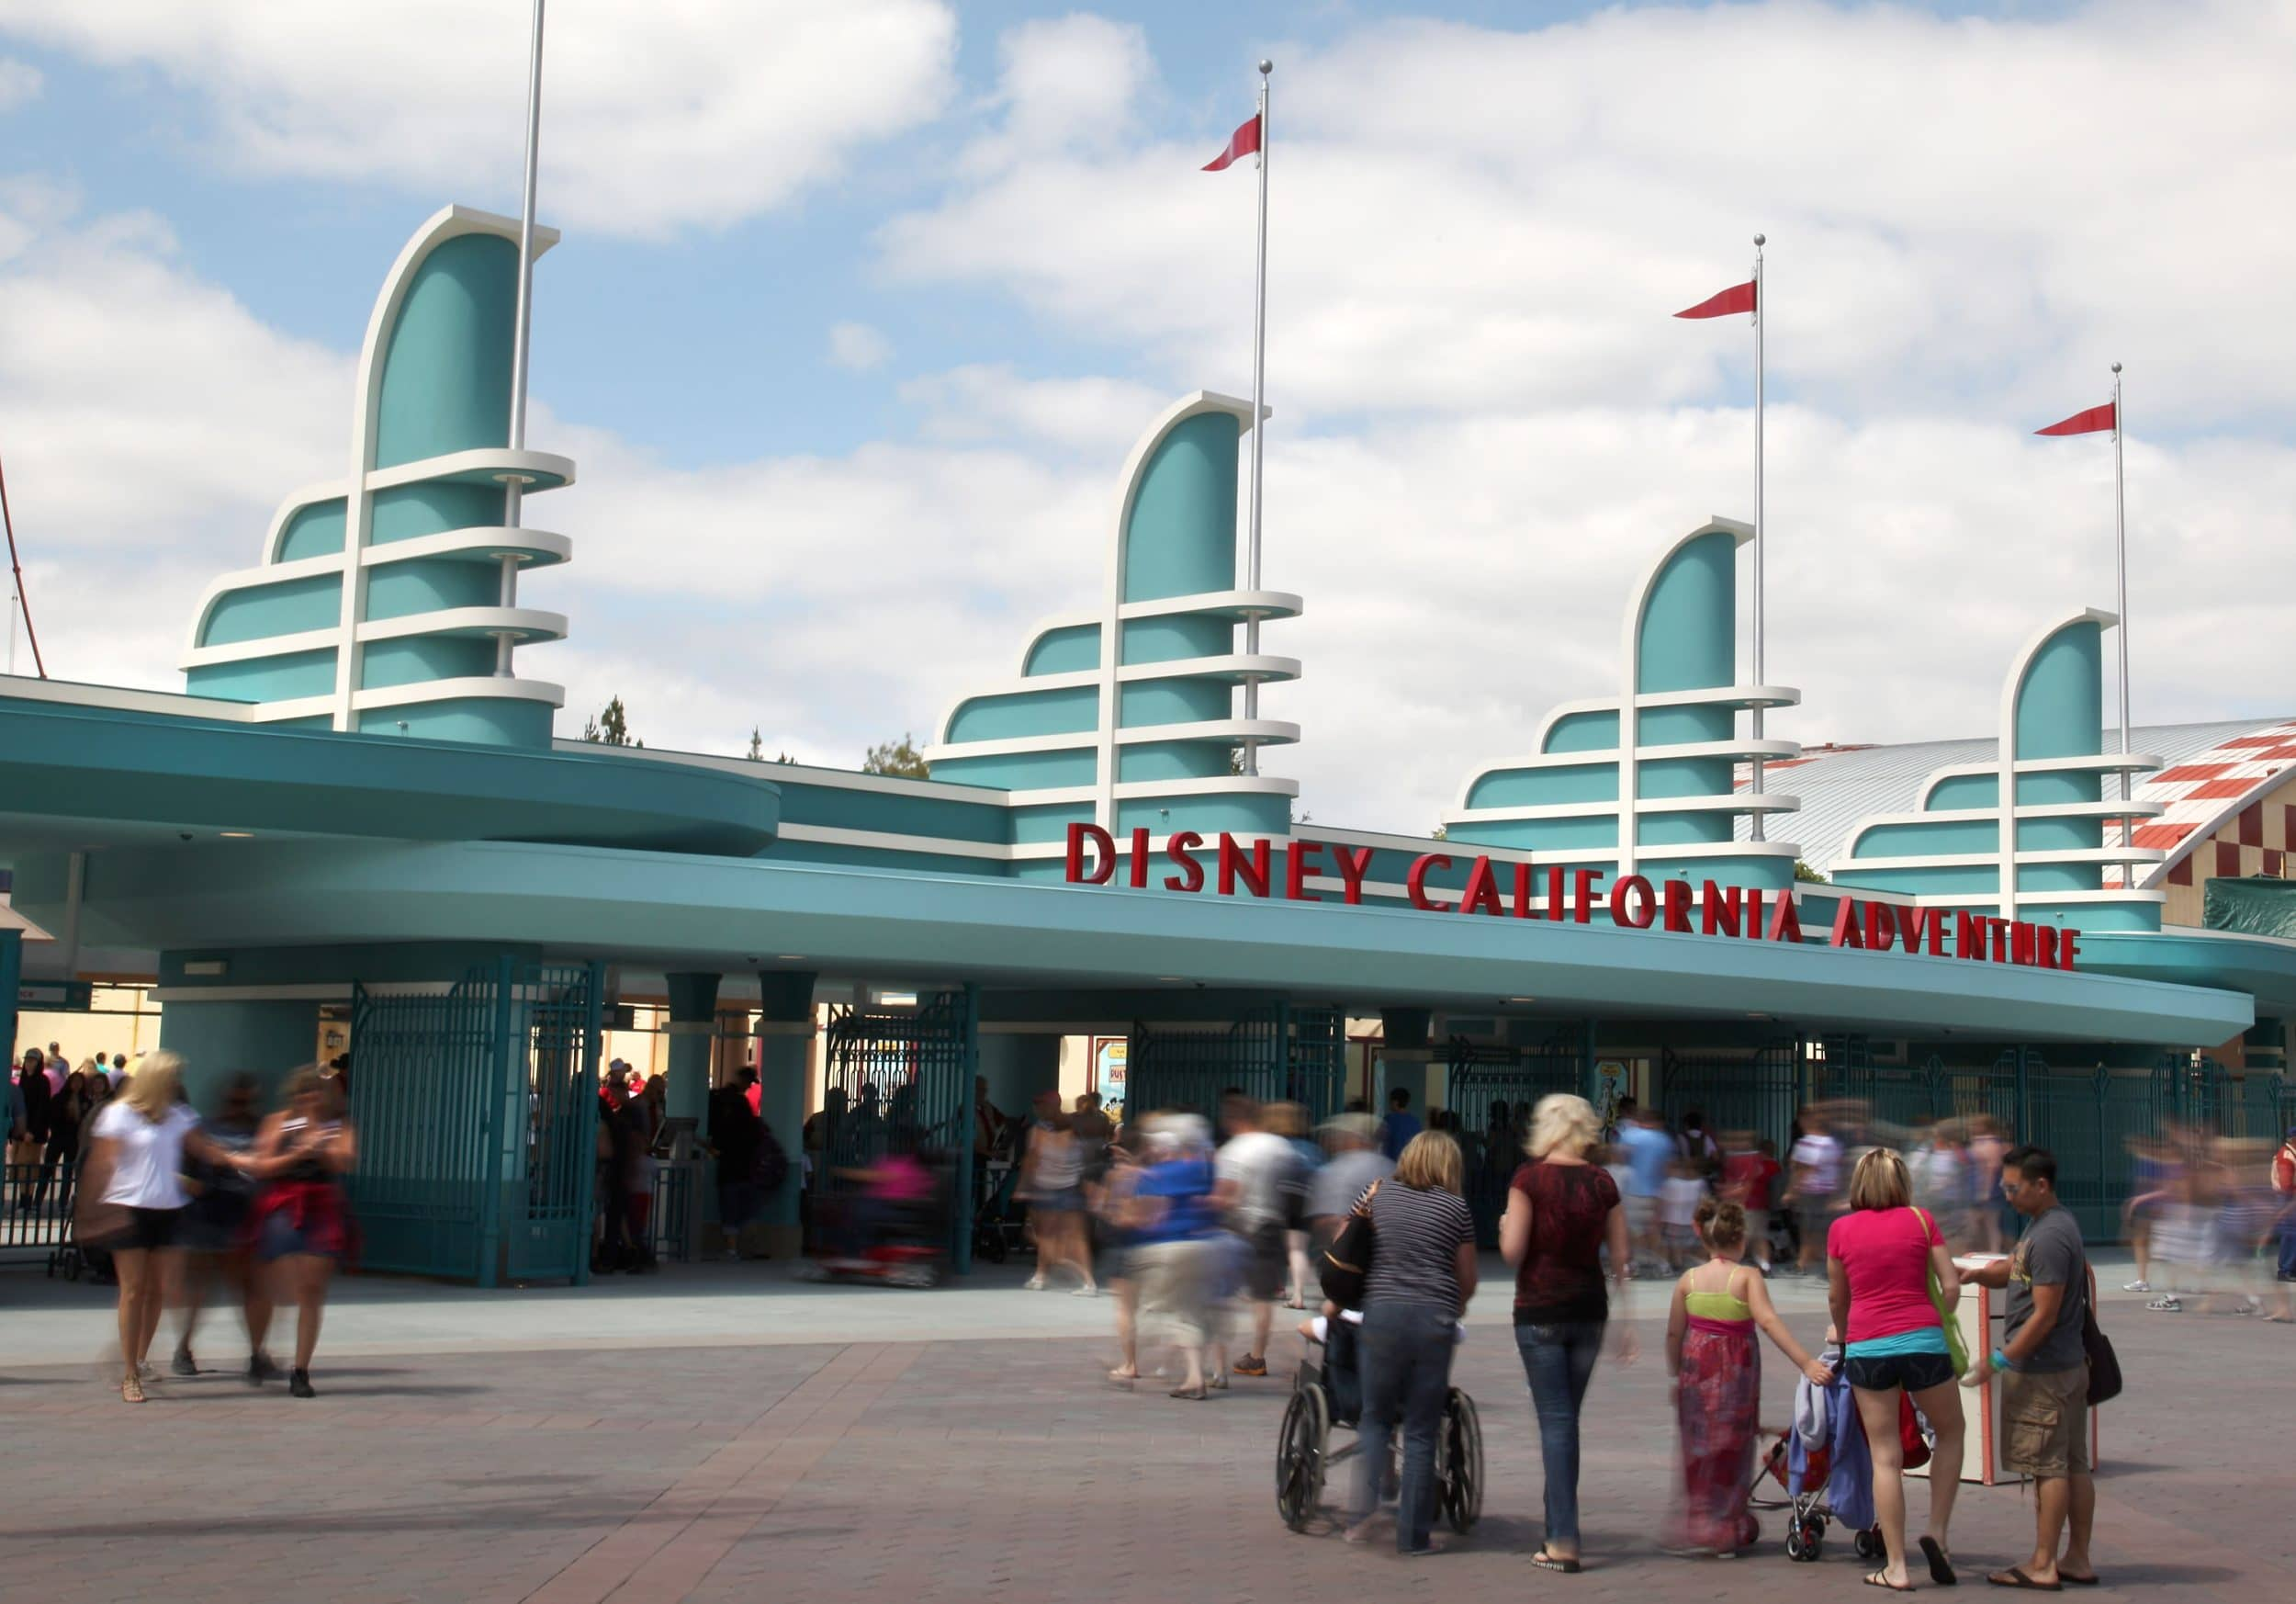 The iconic entrance to Disney California Adventure theme park